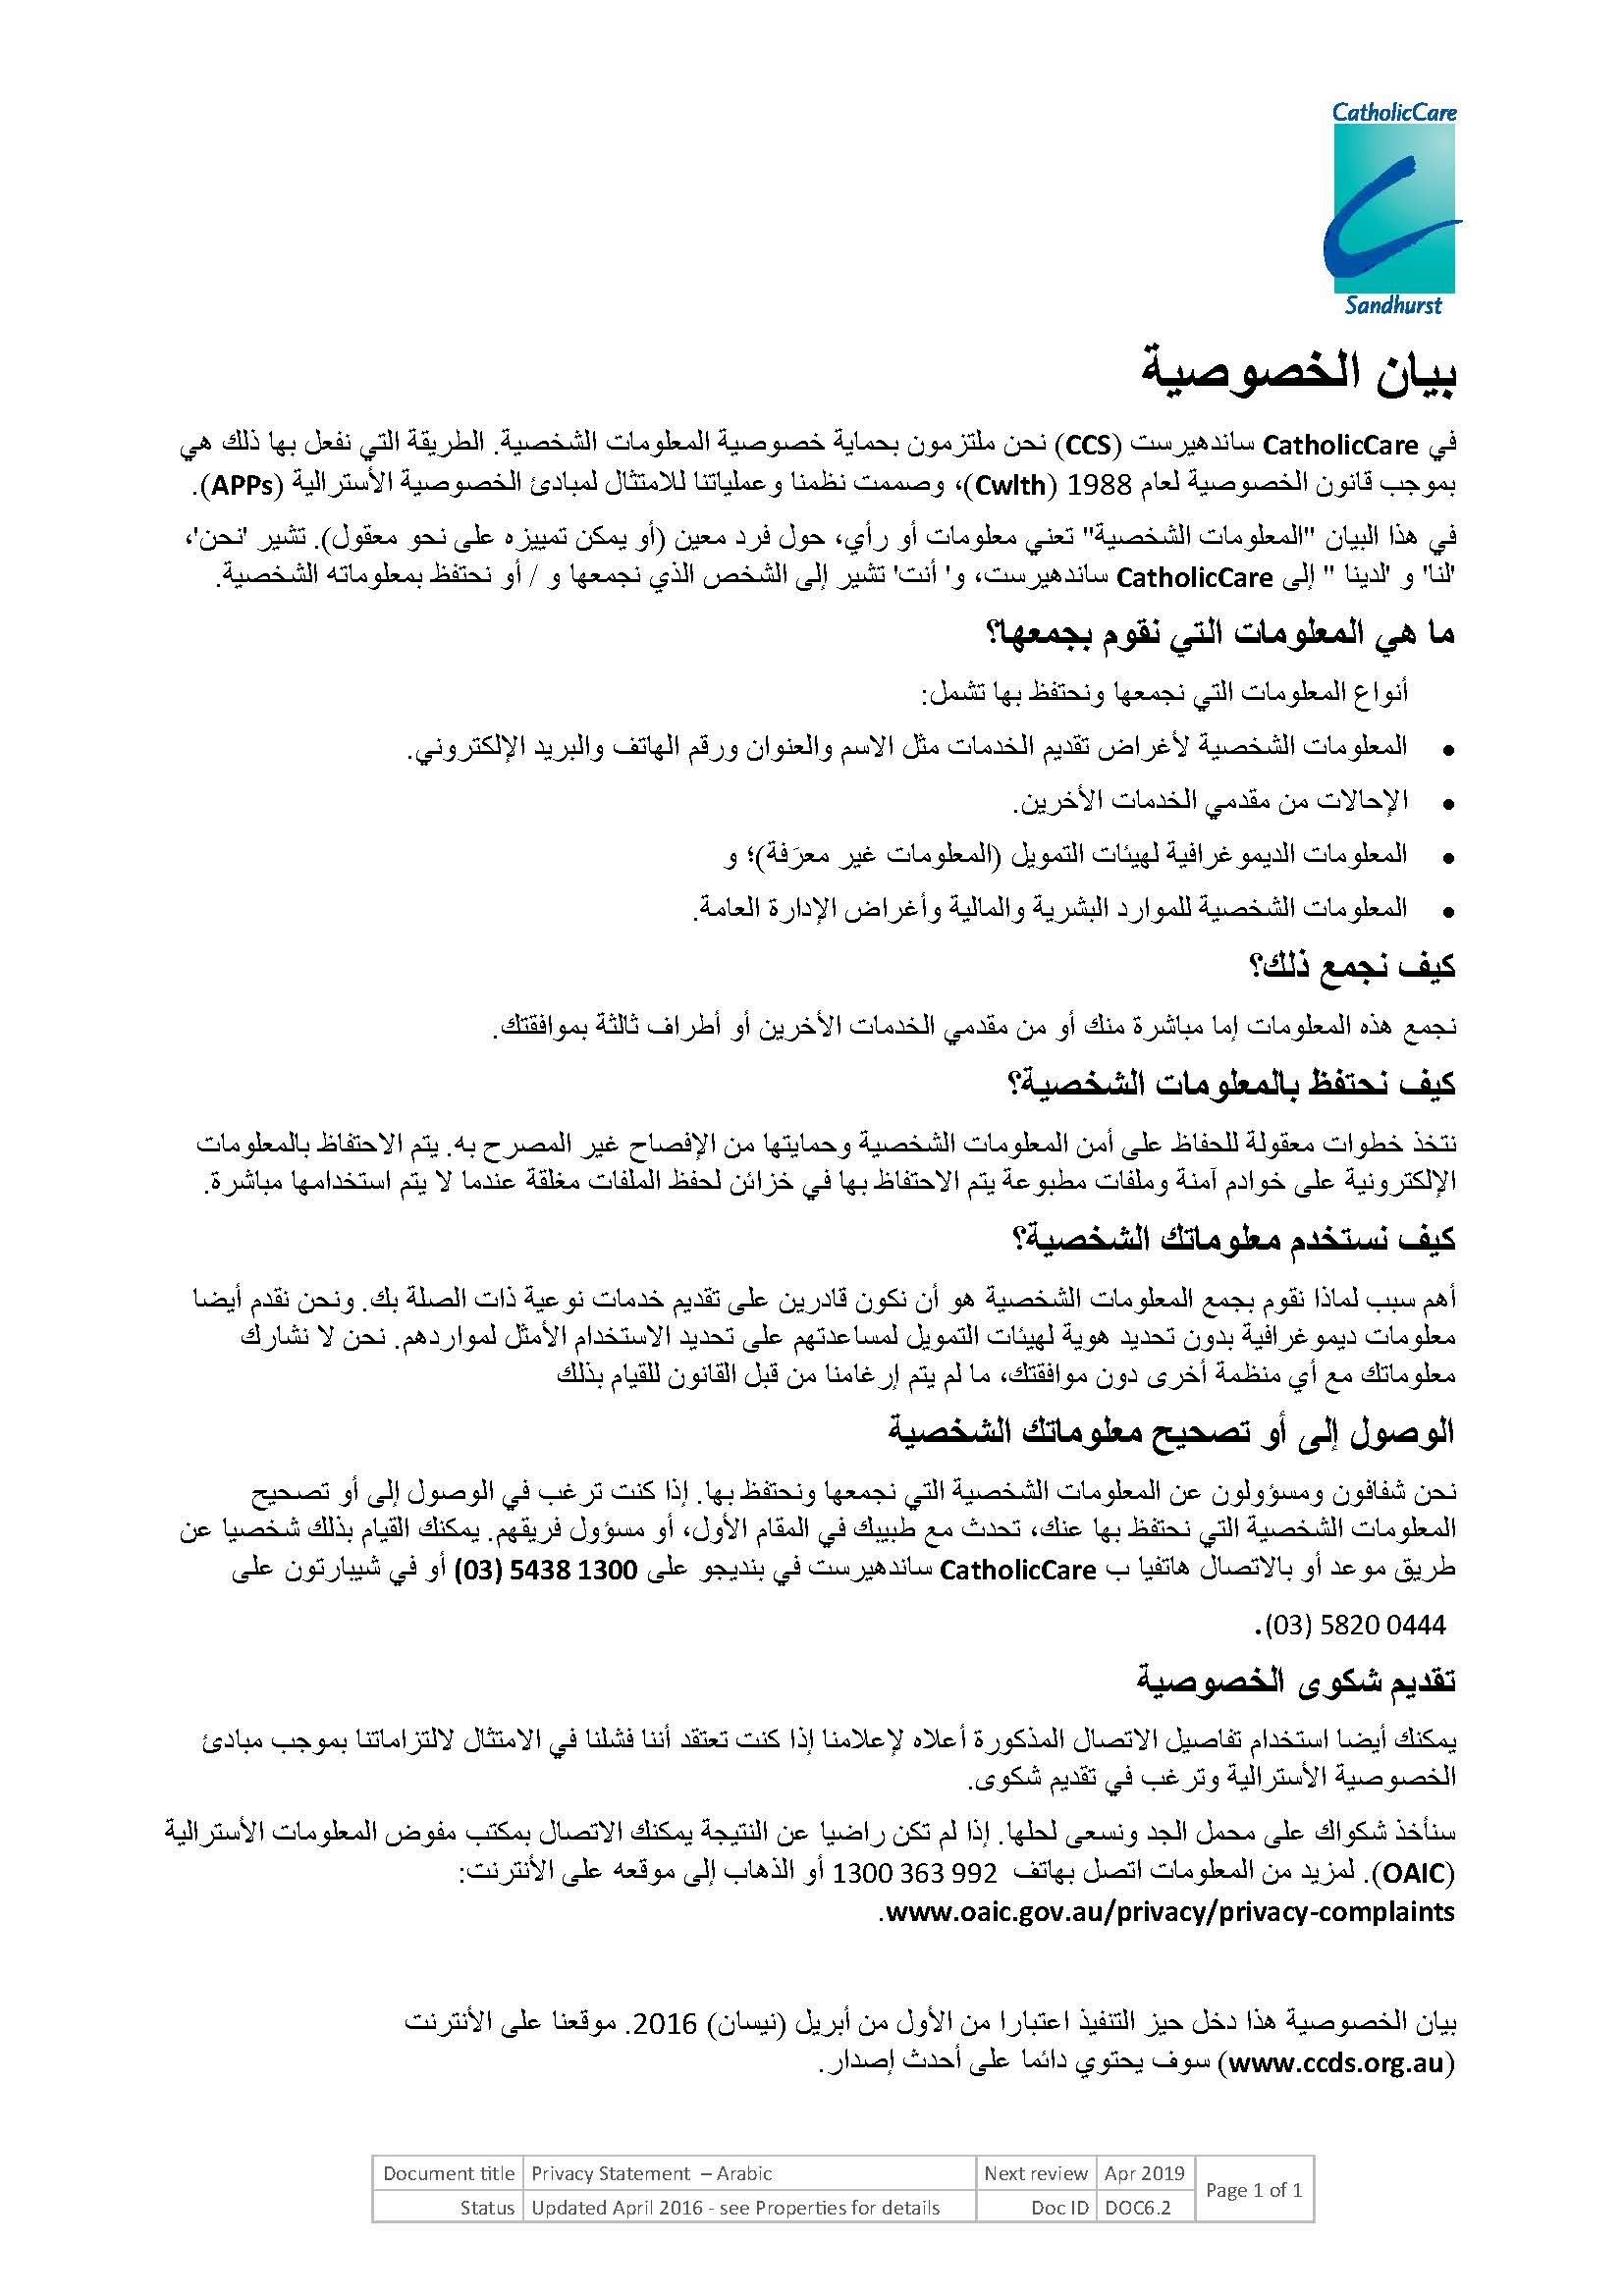 Privacy Statement (DOC6.2)_Arabic.jpg